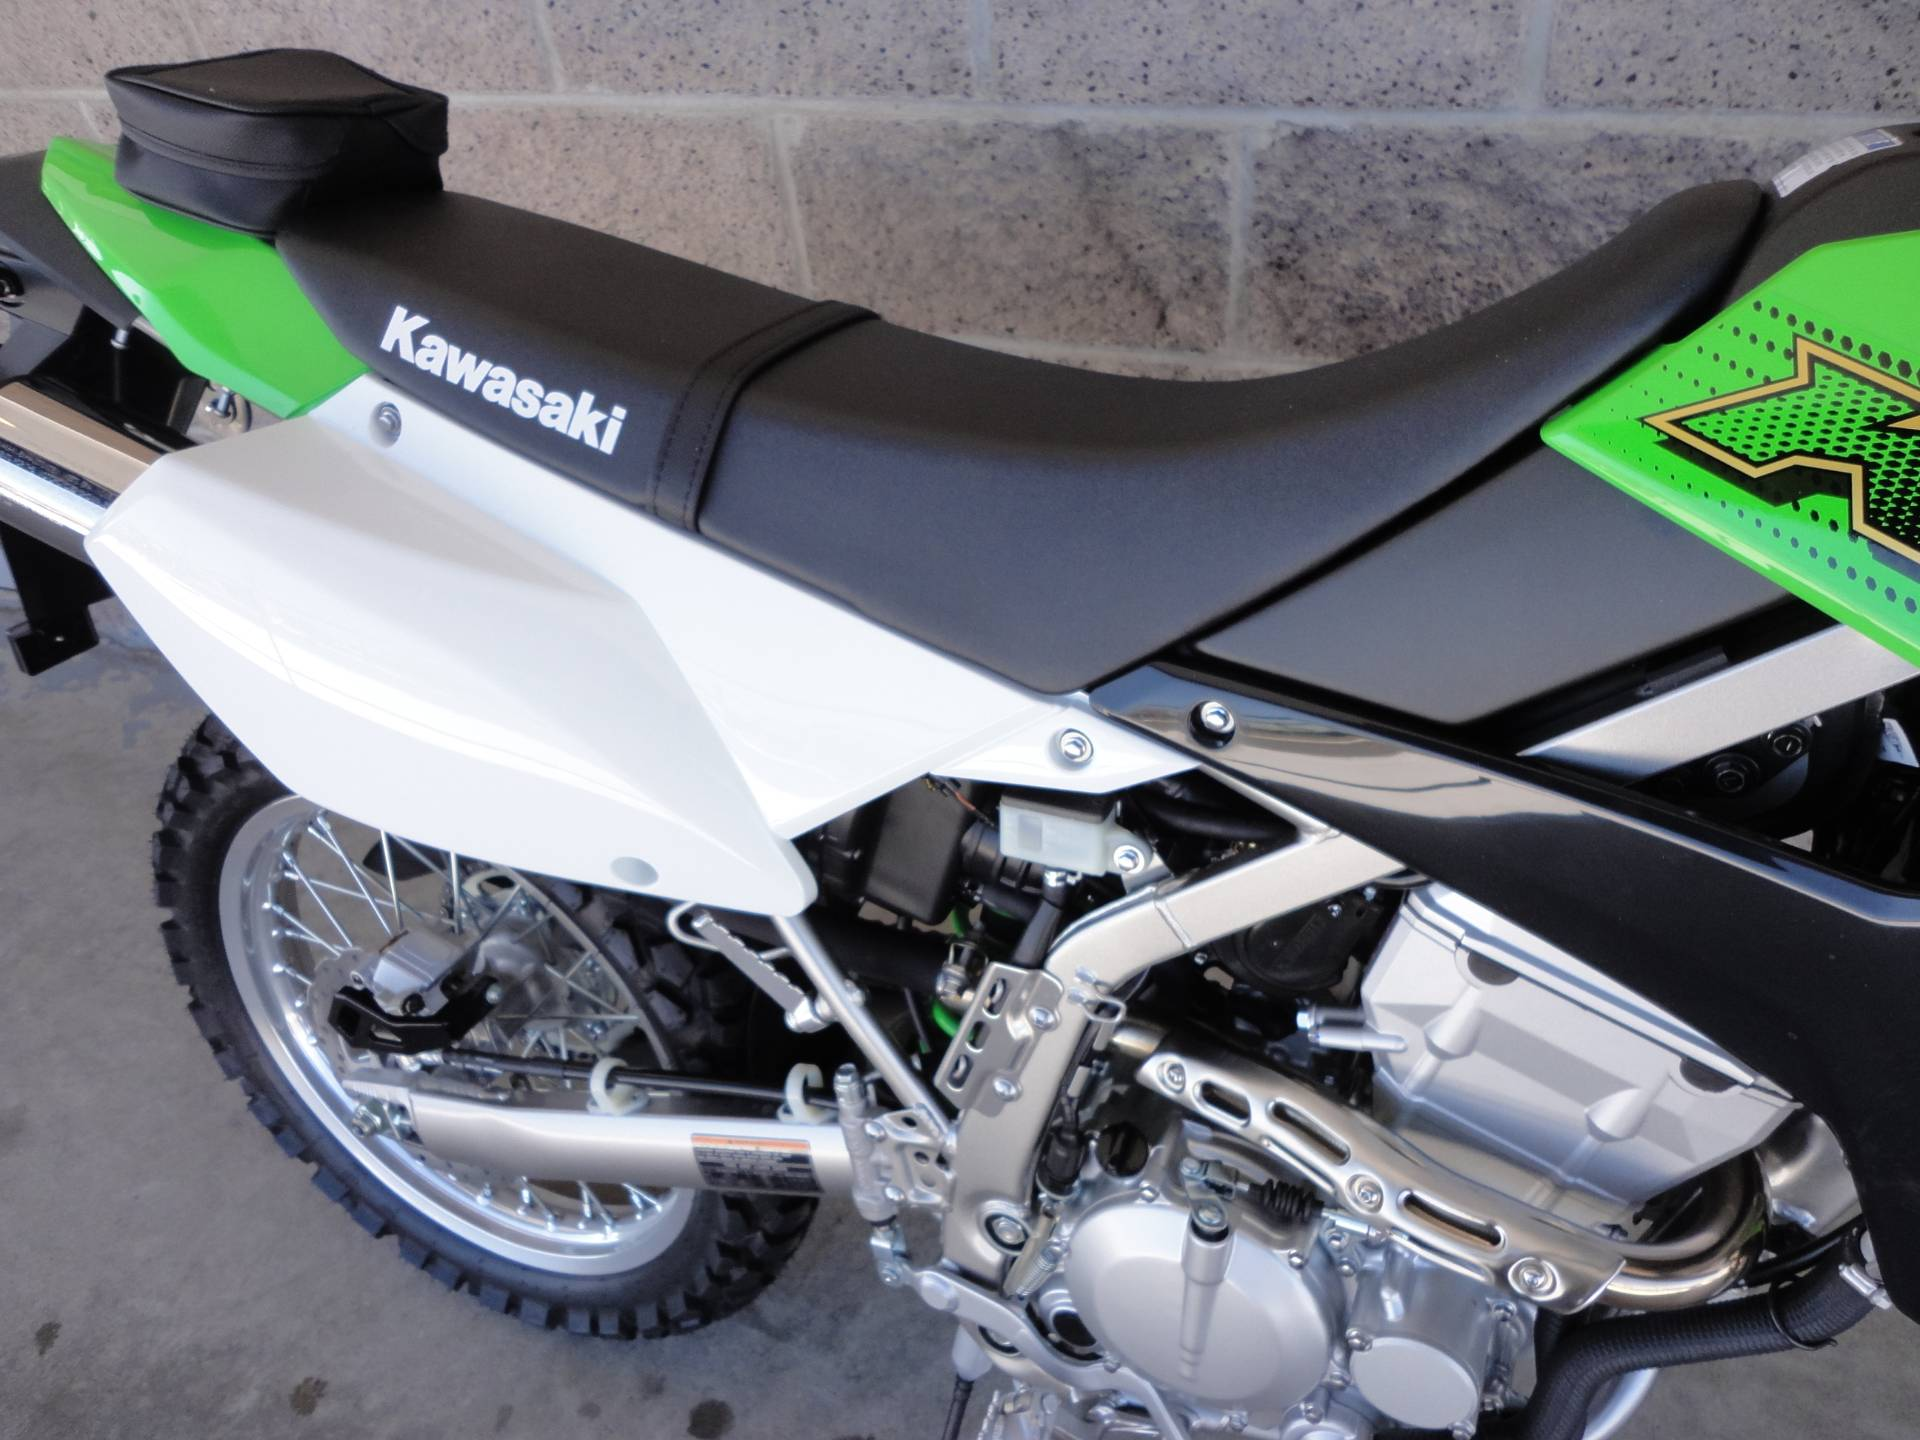 2020 Kawasaki KLX 250 in Denver, Colorado - Photo 24